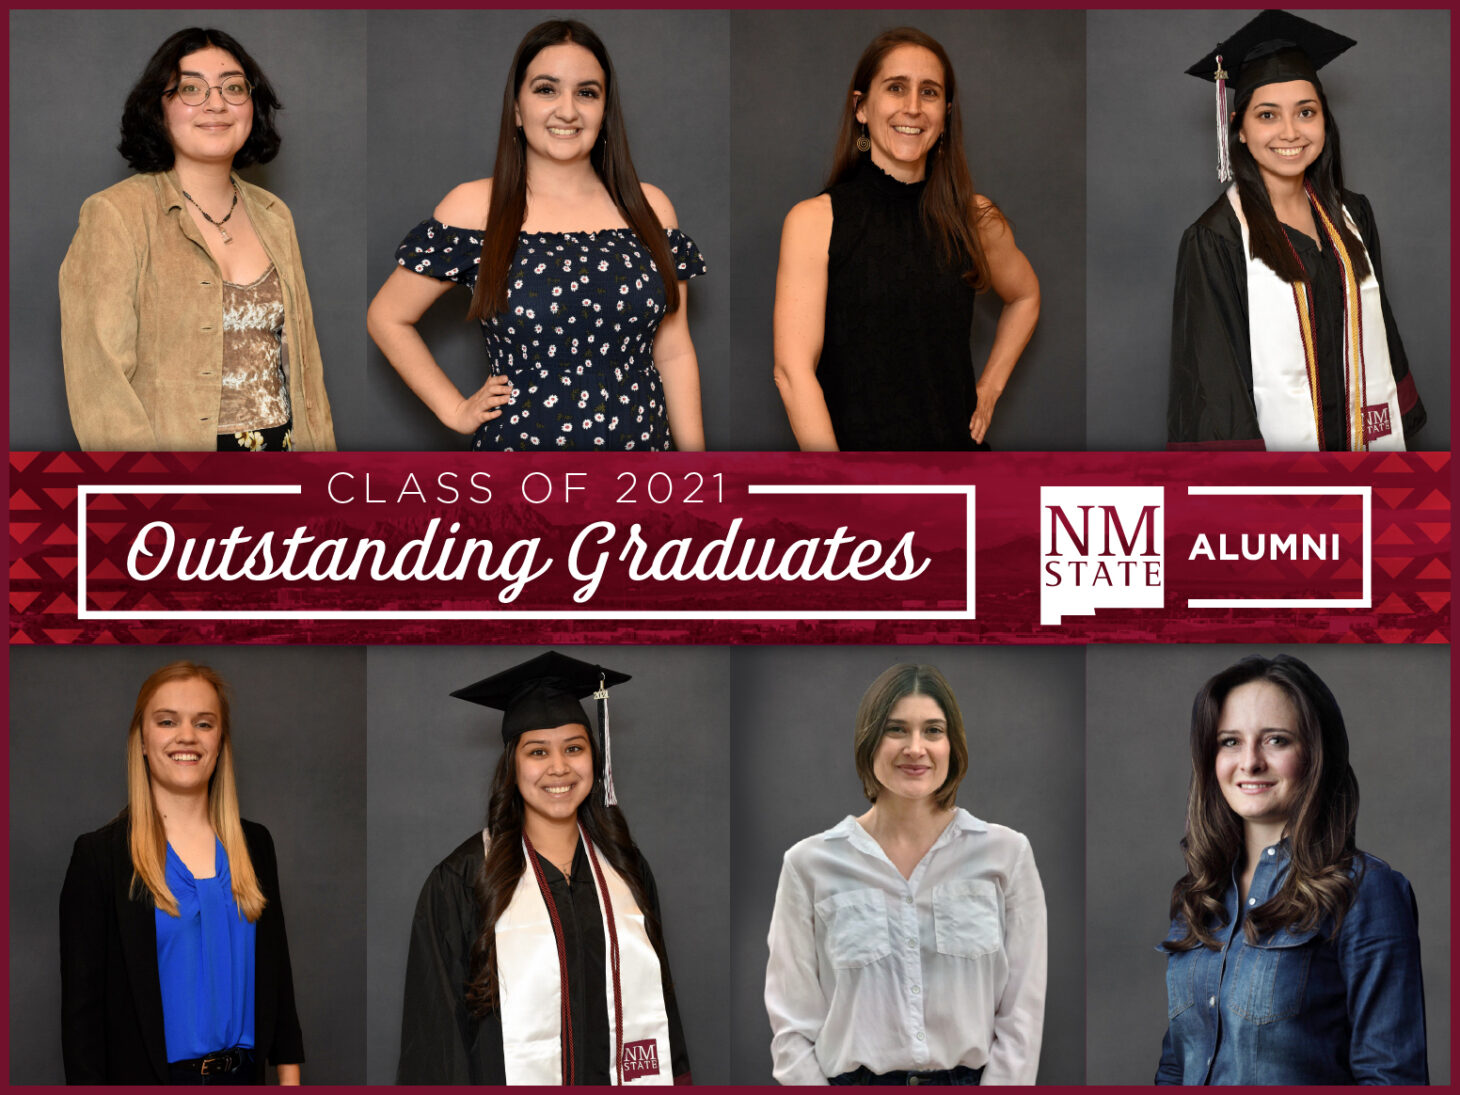 The NMSU Alumni Association recognized the Spring 2021 Outstanding Graduates  | Photo courtesy NMSU